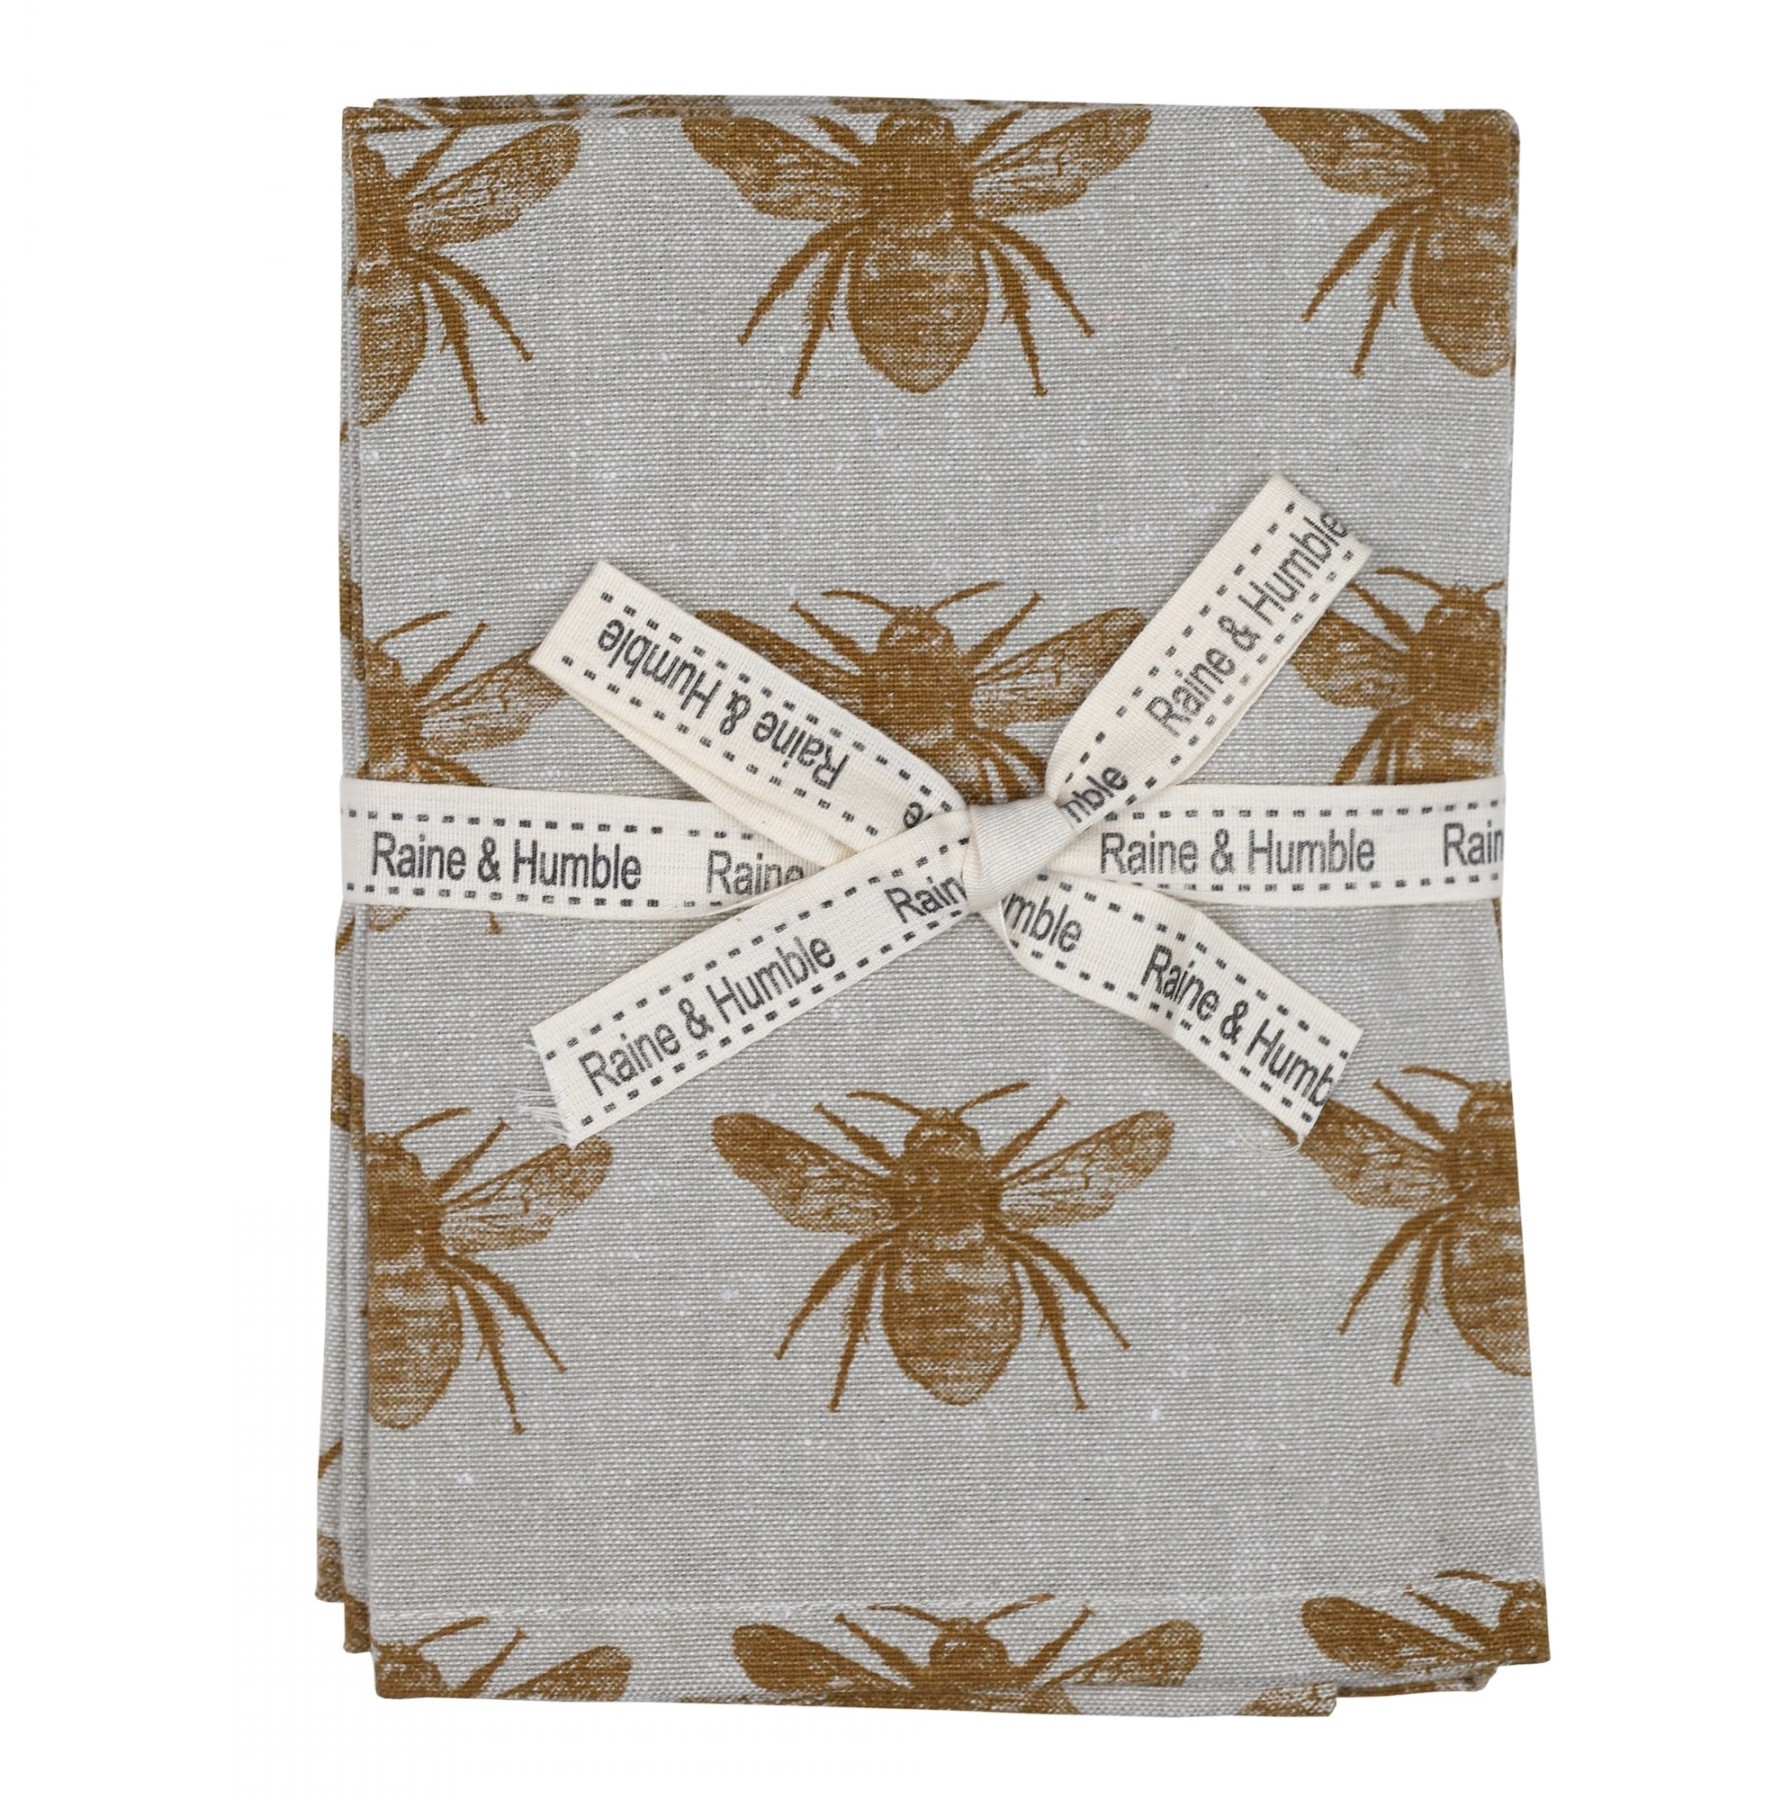 Set of 4 Honey Bee Cloth Napkins in Mustard Yellow